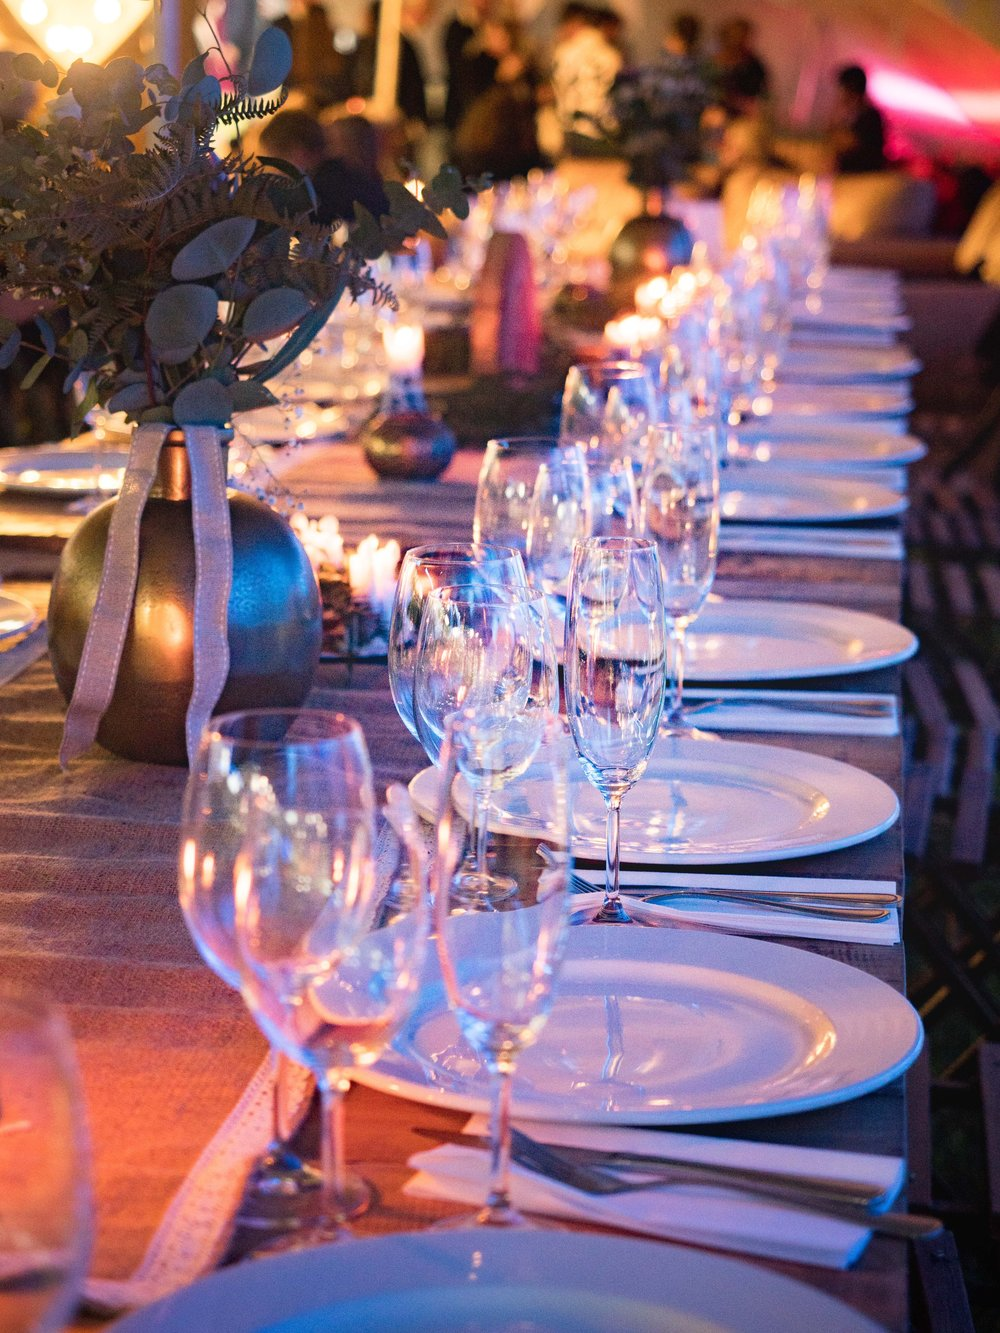 banquet catering 1.jpg